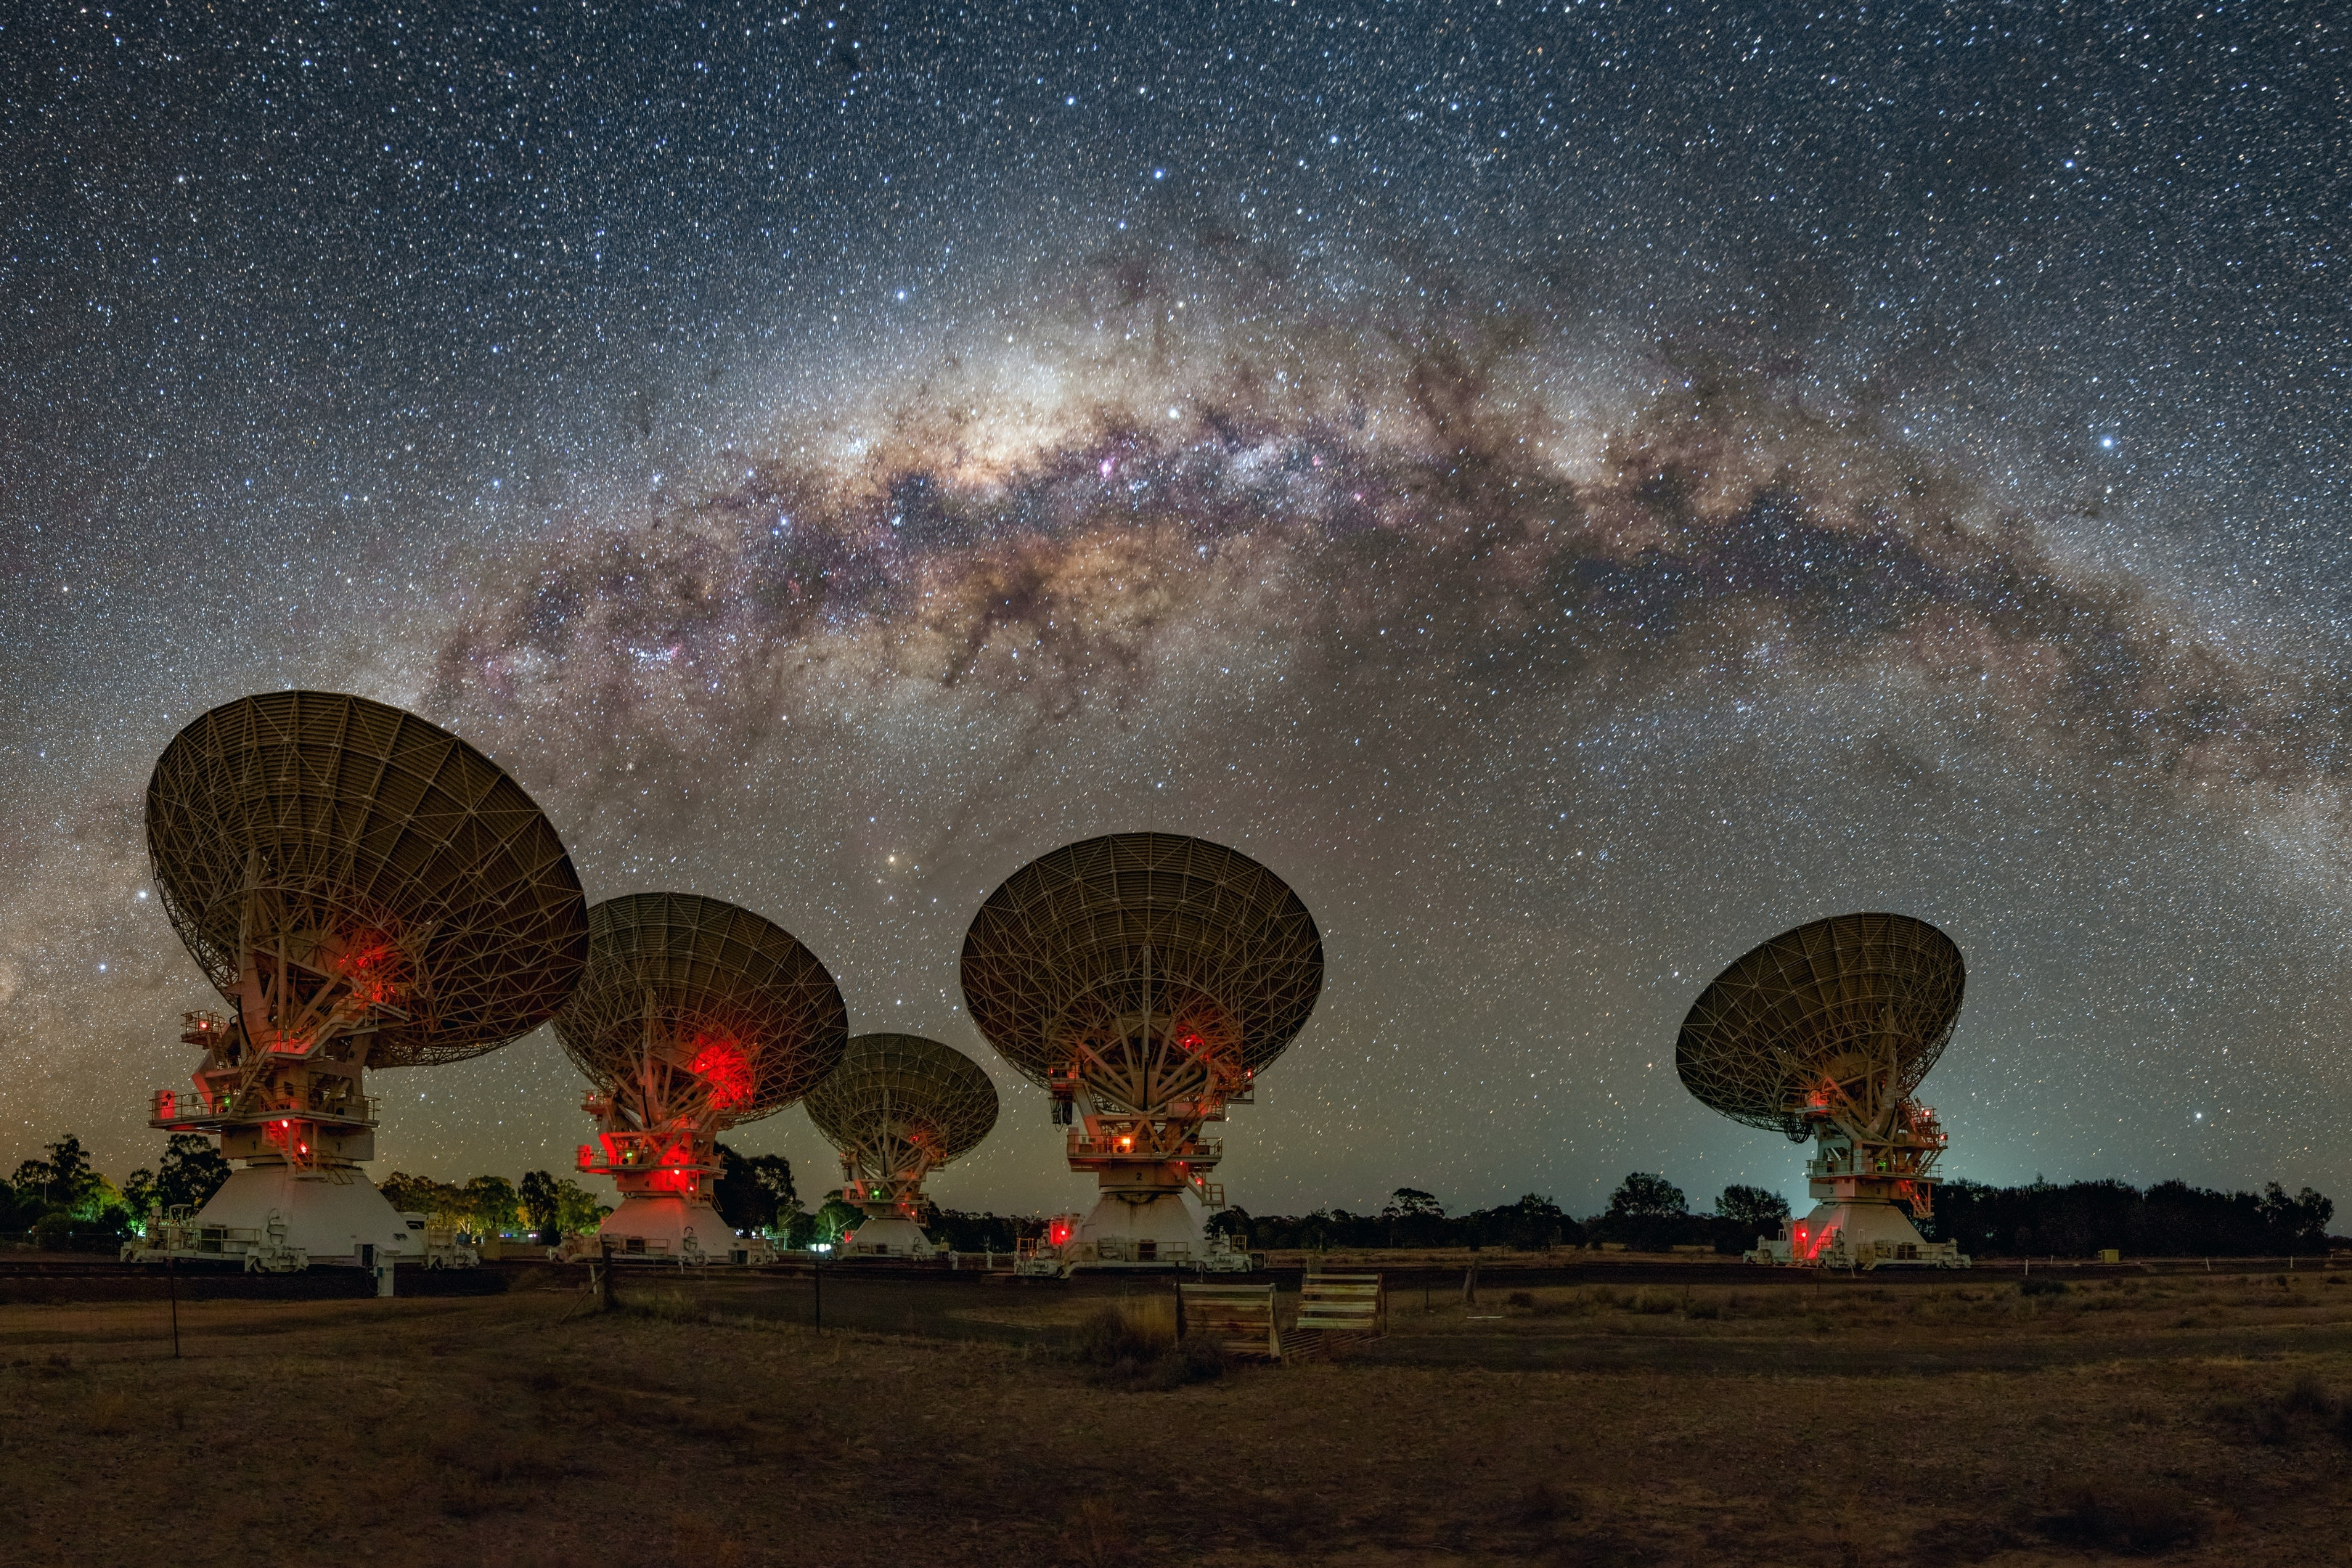 The Australia Telescope Compact Array (ATCA) used in the follow-up observations. CSIRO, Author provided